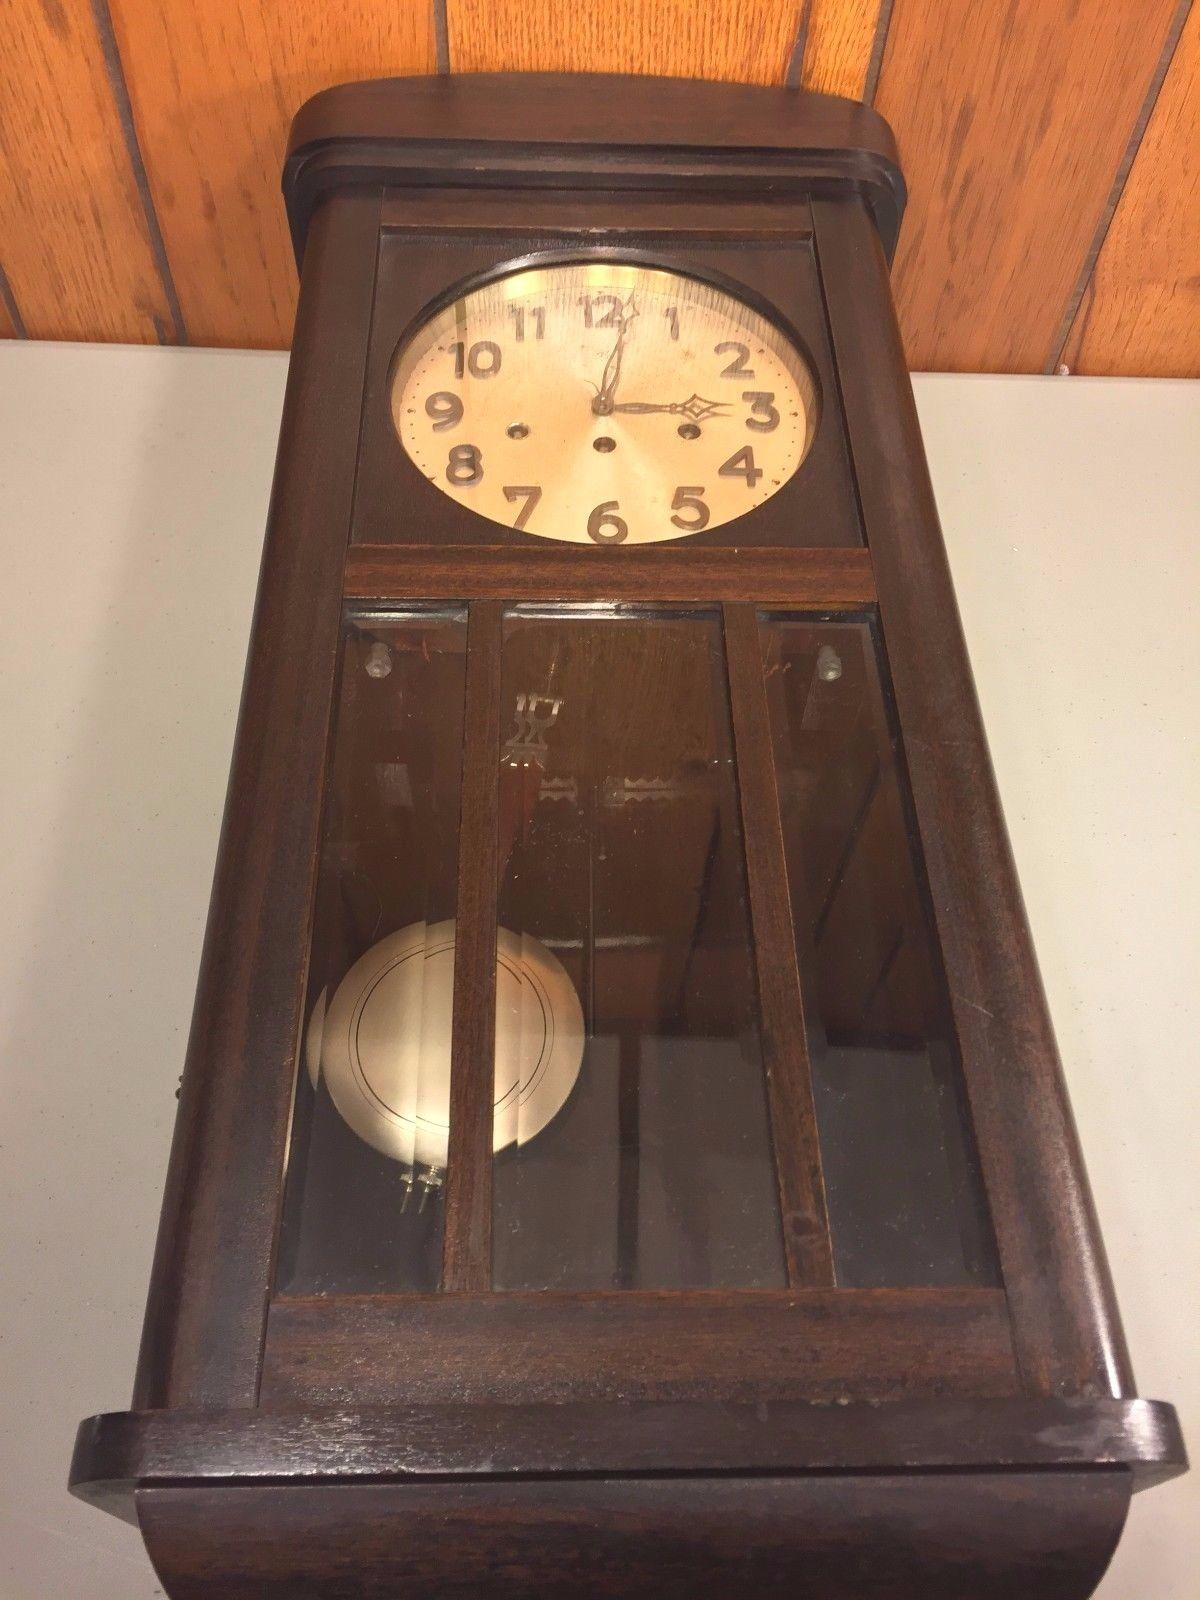 Vintage Junghans Wall Clock With Westminster Chimes Runs